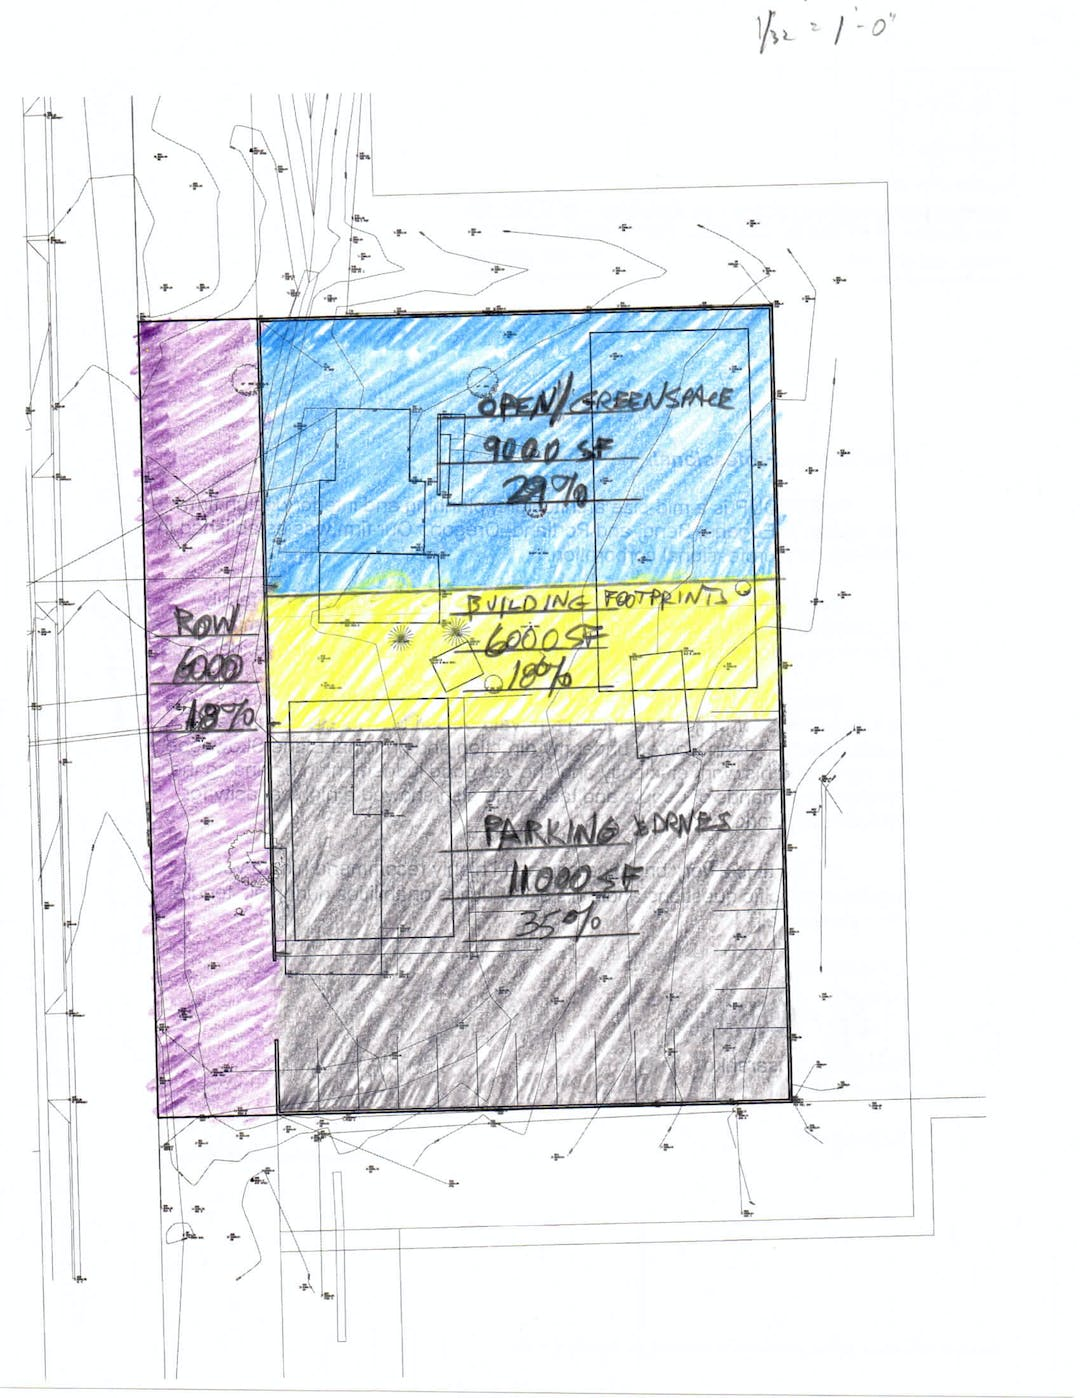 Conceptual Site Plan (with right of way dedication)